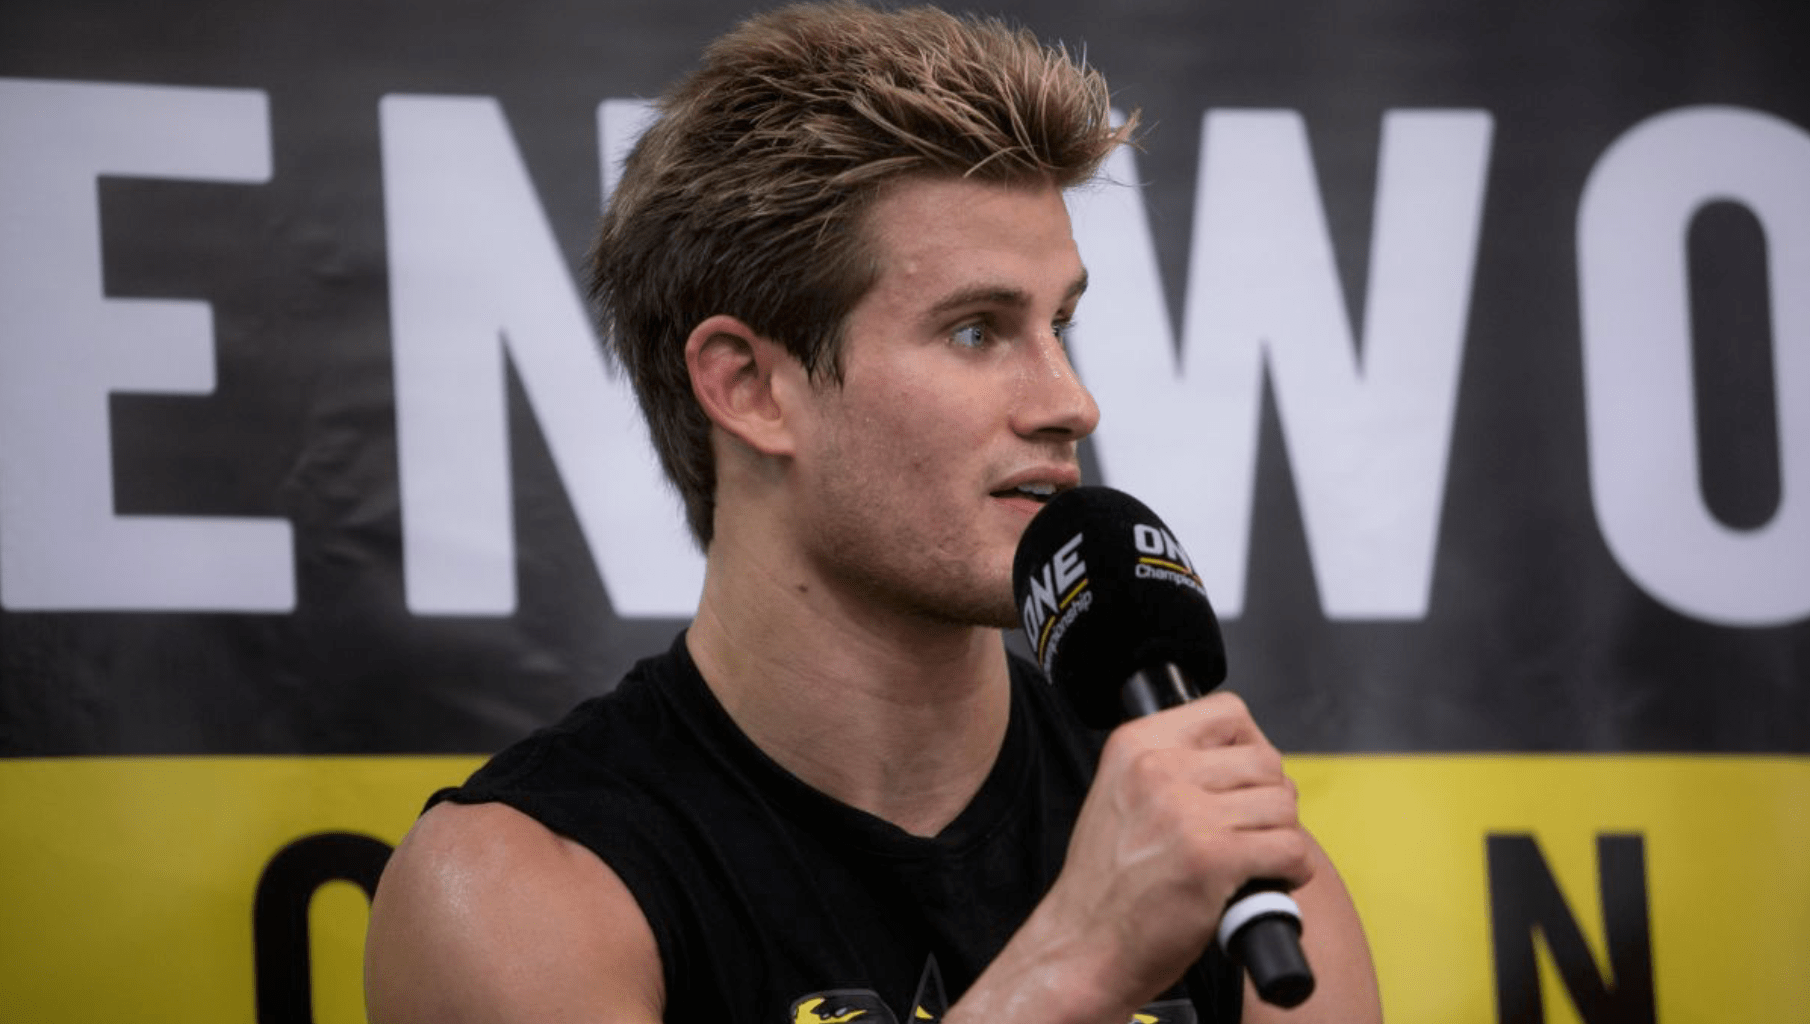 Sage Northcutt Is Super Excited To Make His ONE Debut